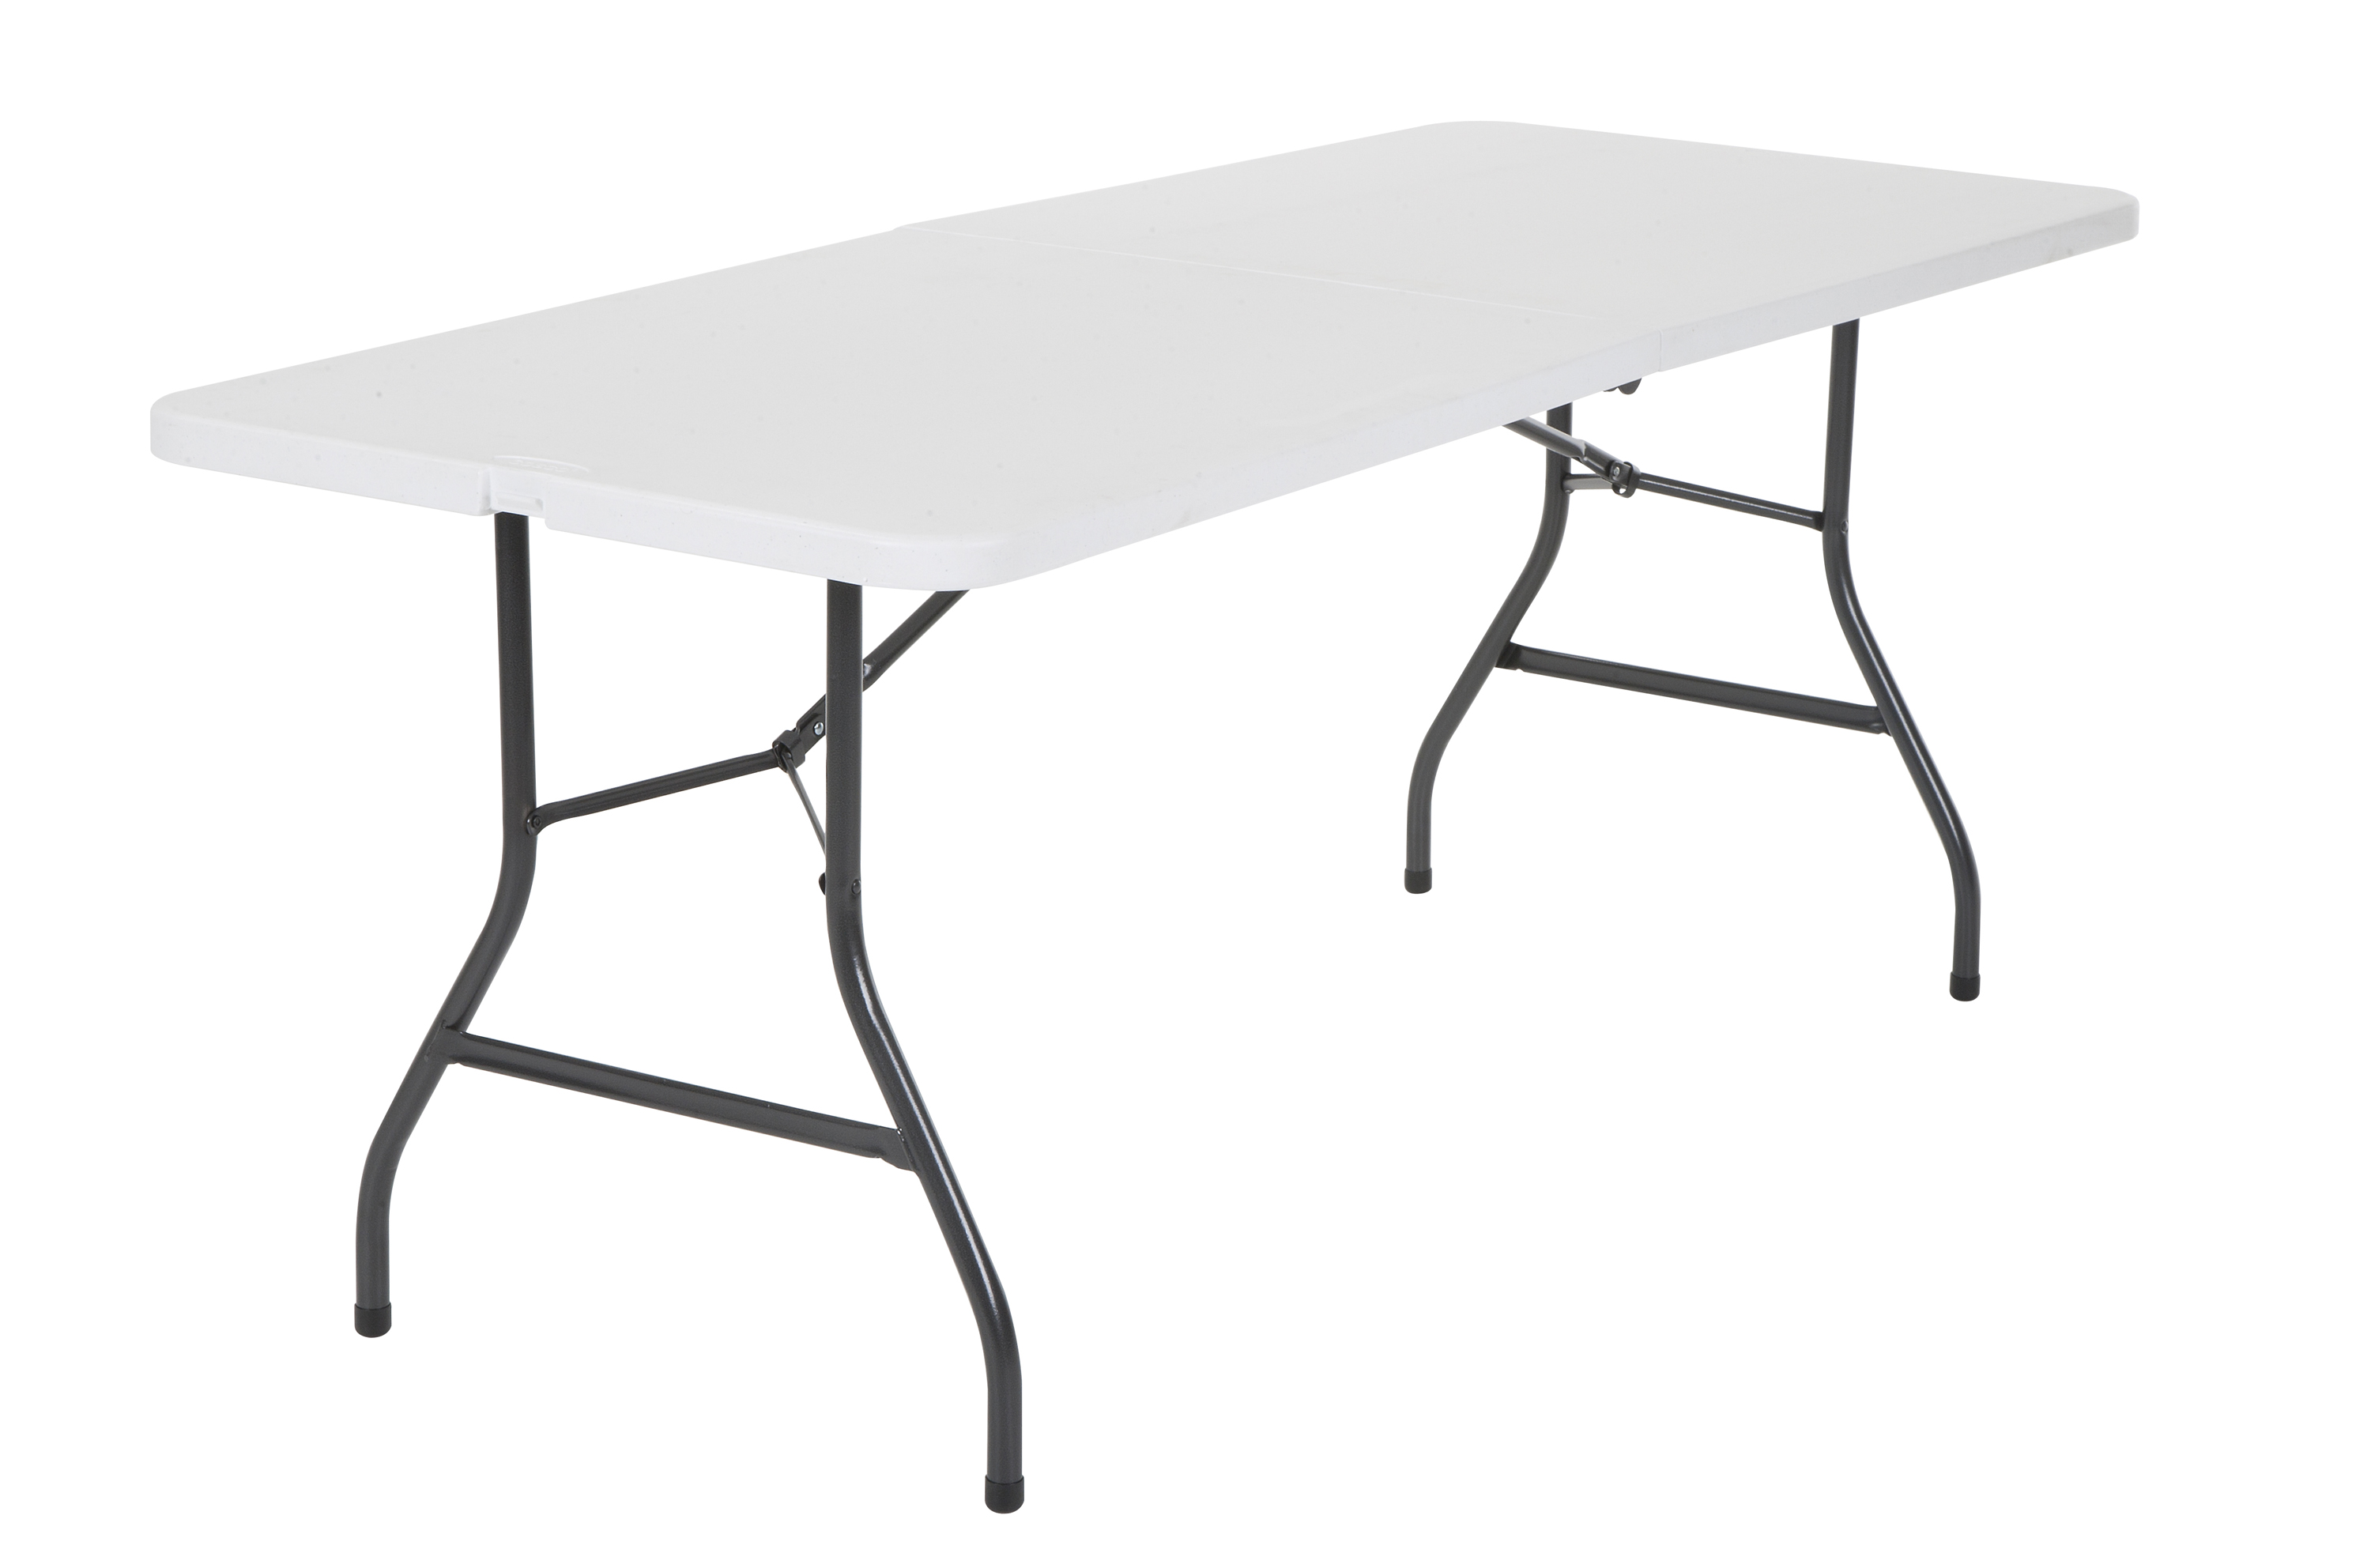 Ordinaire Details About 6 Foot Folding Table Portable Event Party Indoor Outdoor  Weatherproof Buffet NEW